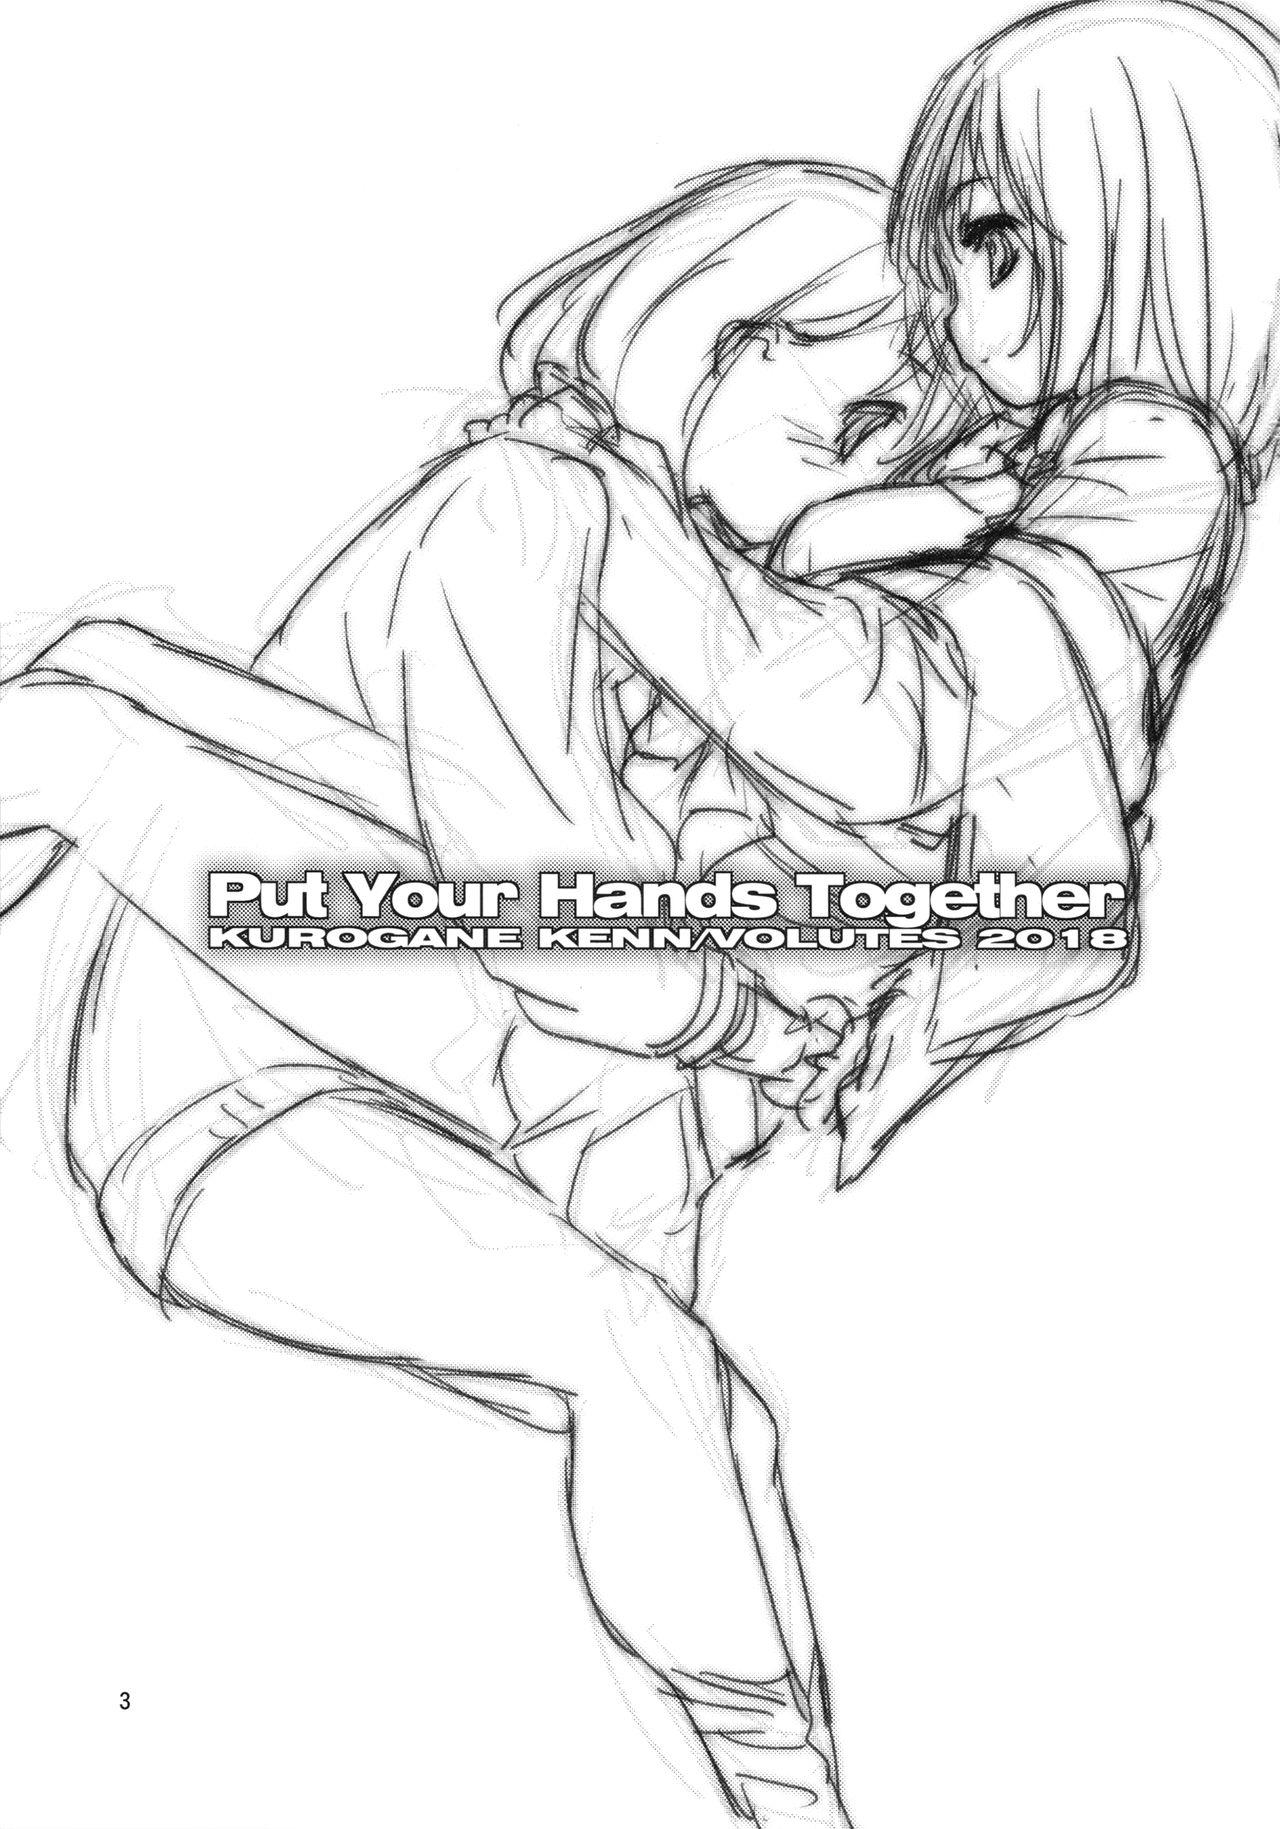 Put Your Hands Together 2